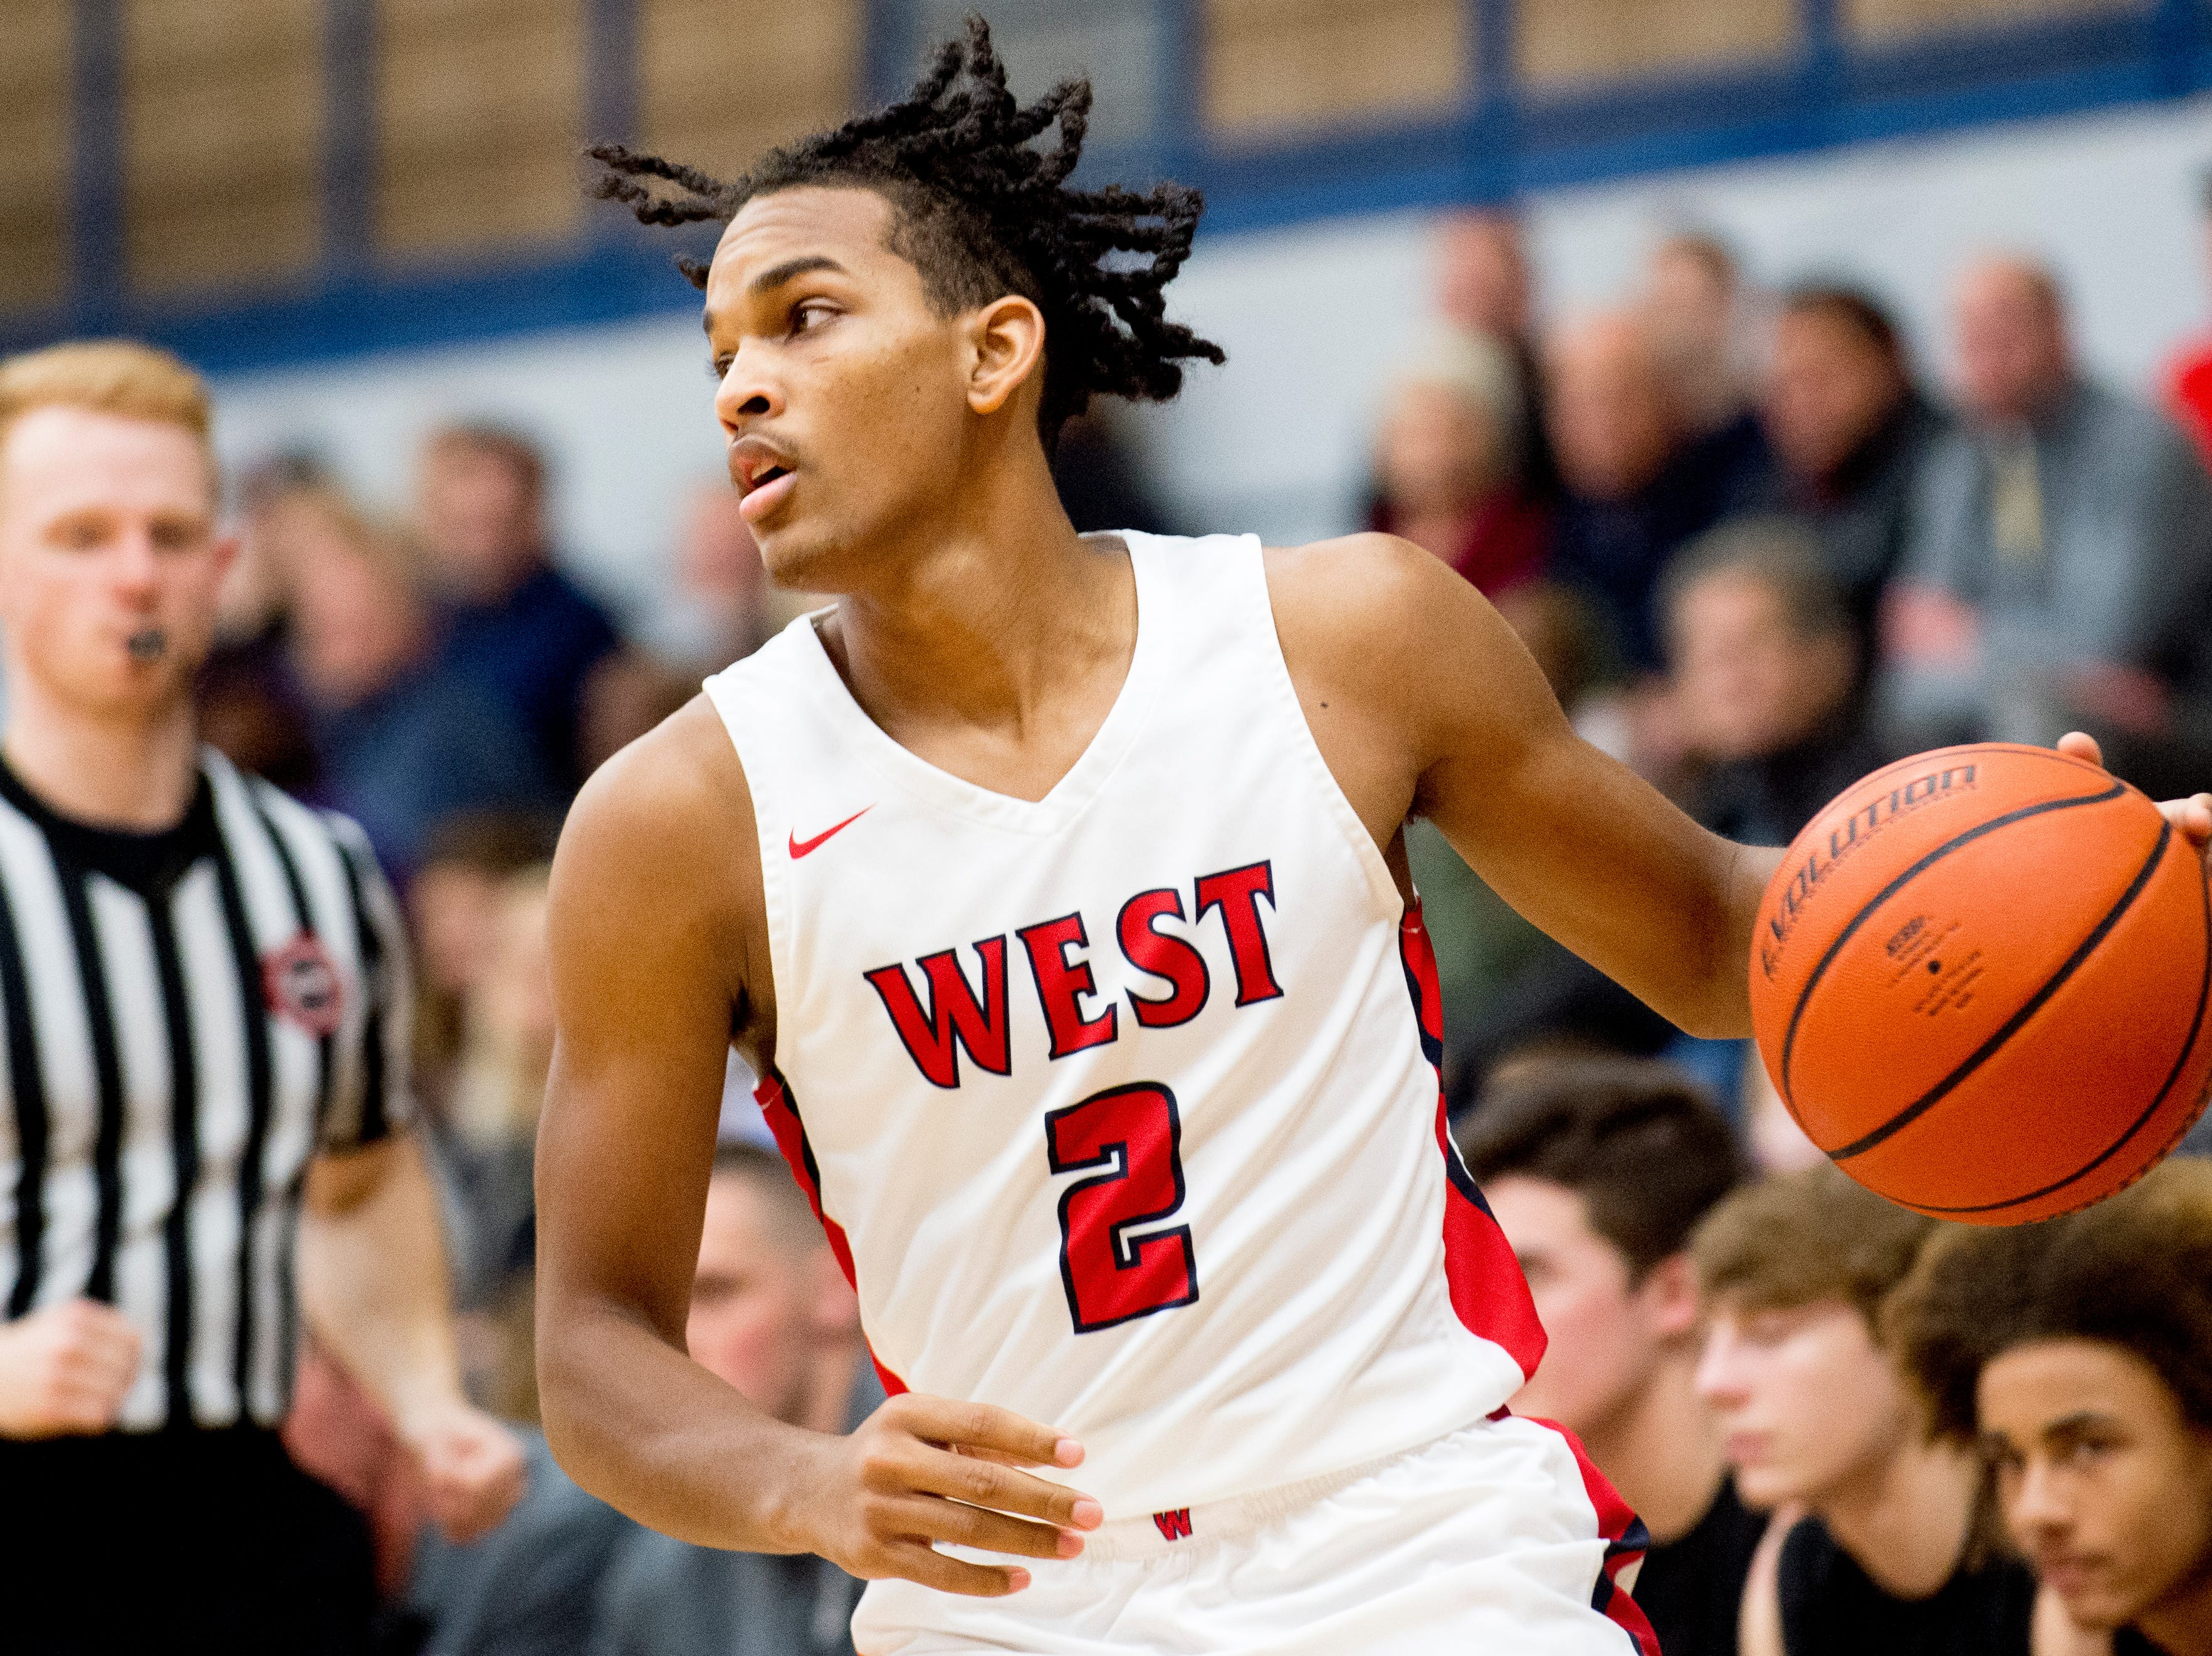 West's Cedarius Bost (2) looks to pass during a game between West and Webb at West High School in Knoxville, Tennessee on Friday, January 4, 2019.